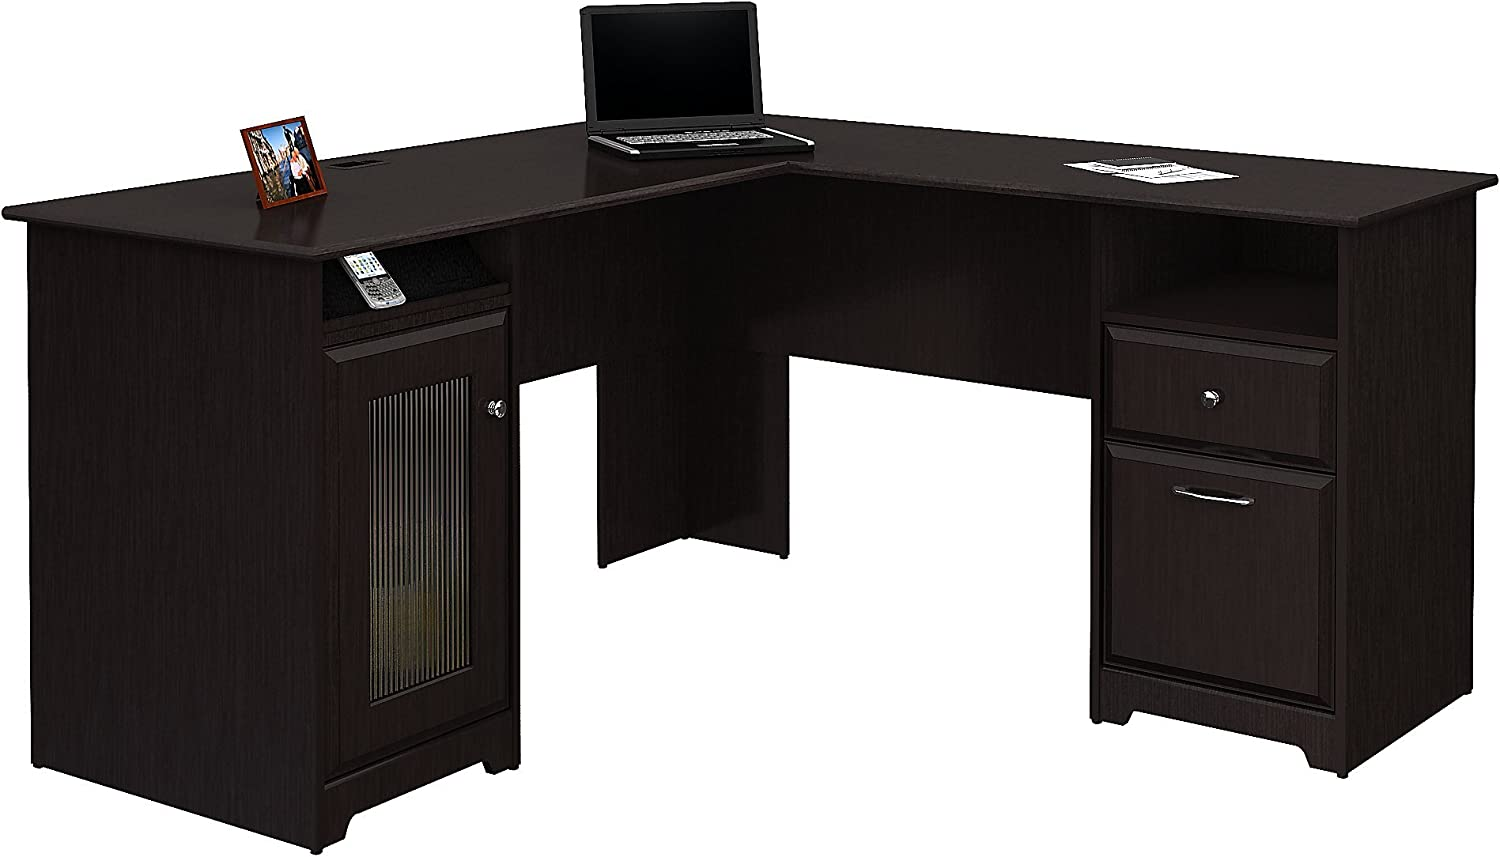 Bush Furniture Cabot L Shaped Computer Desk in Espresso Oak